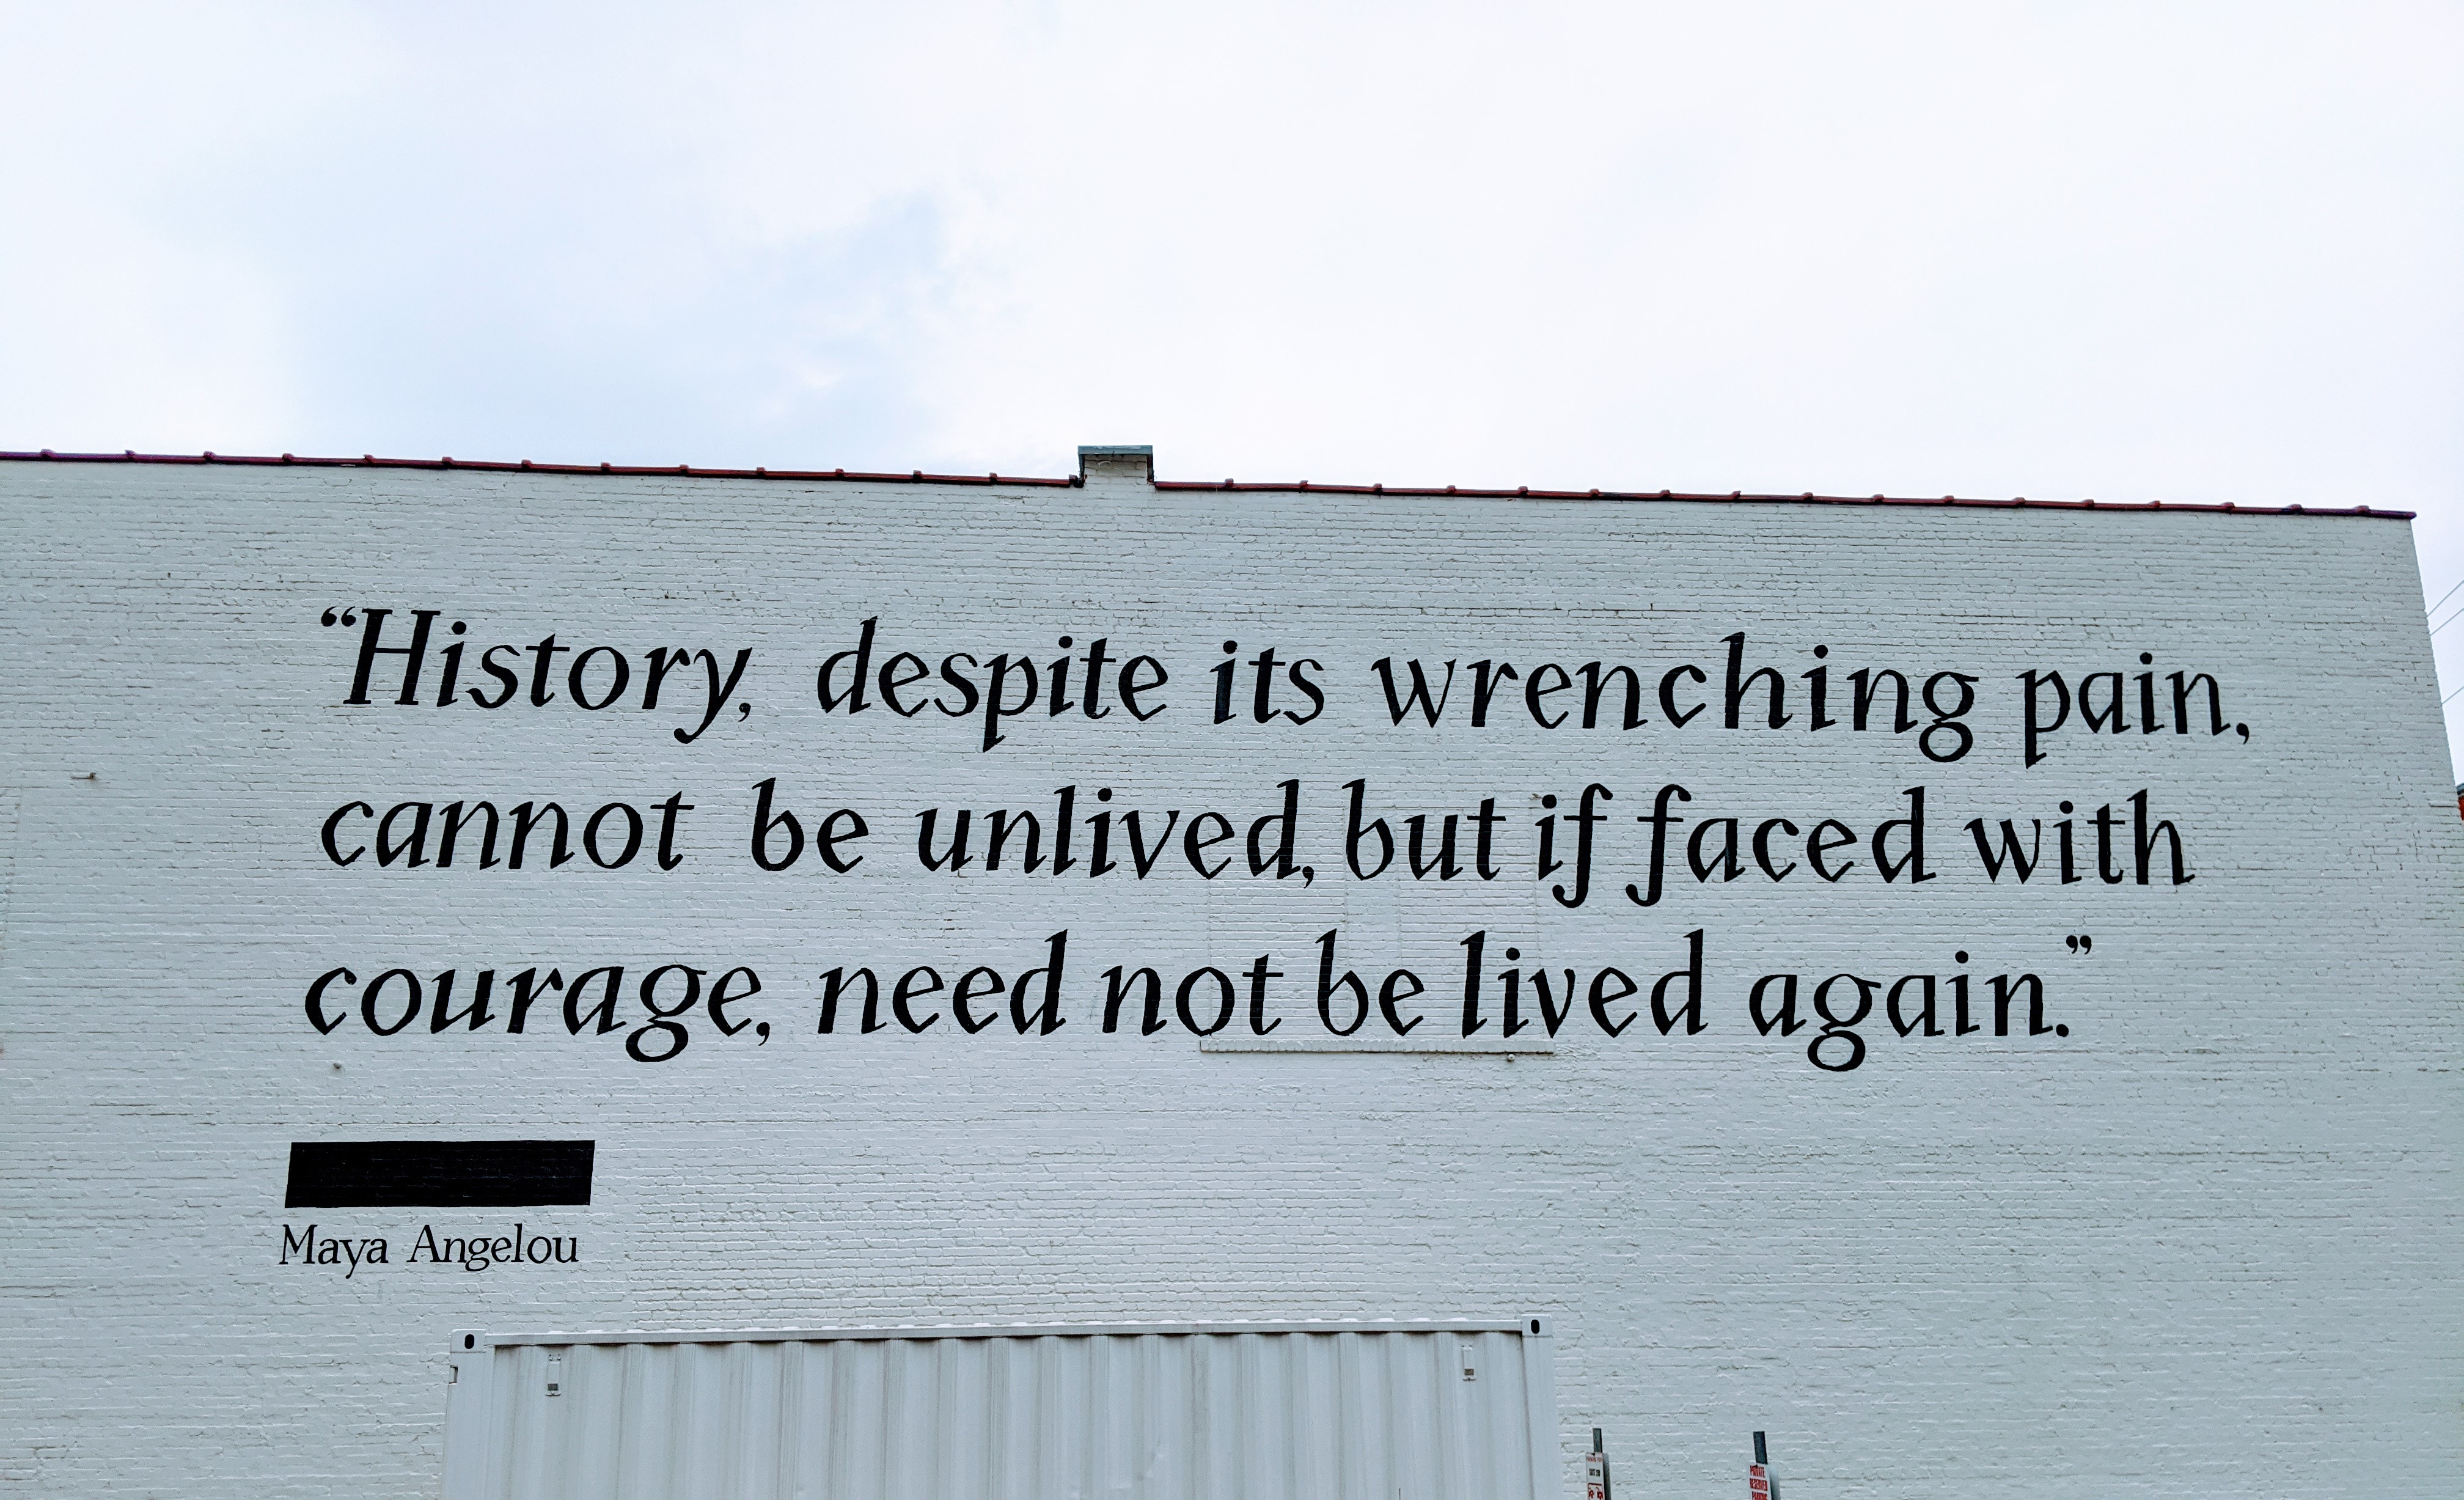 """Maya Angelou quote, """"History, despite its wrenching pain, cannot be unlived, but if faced with courage, need not be lived again."""""""